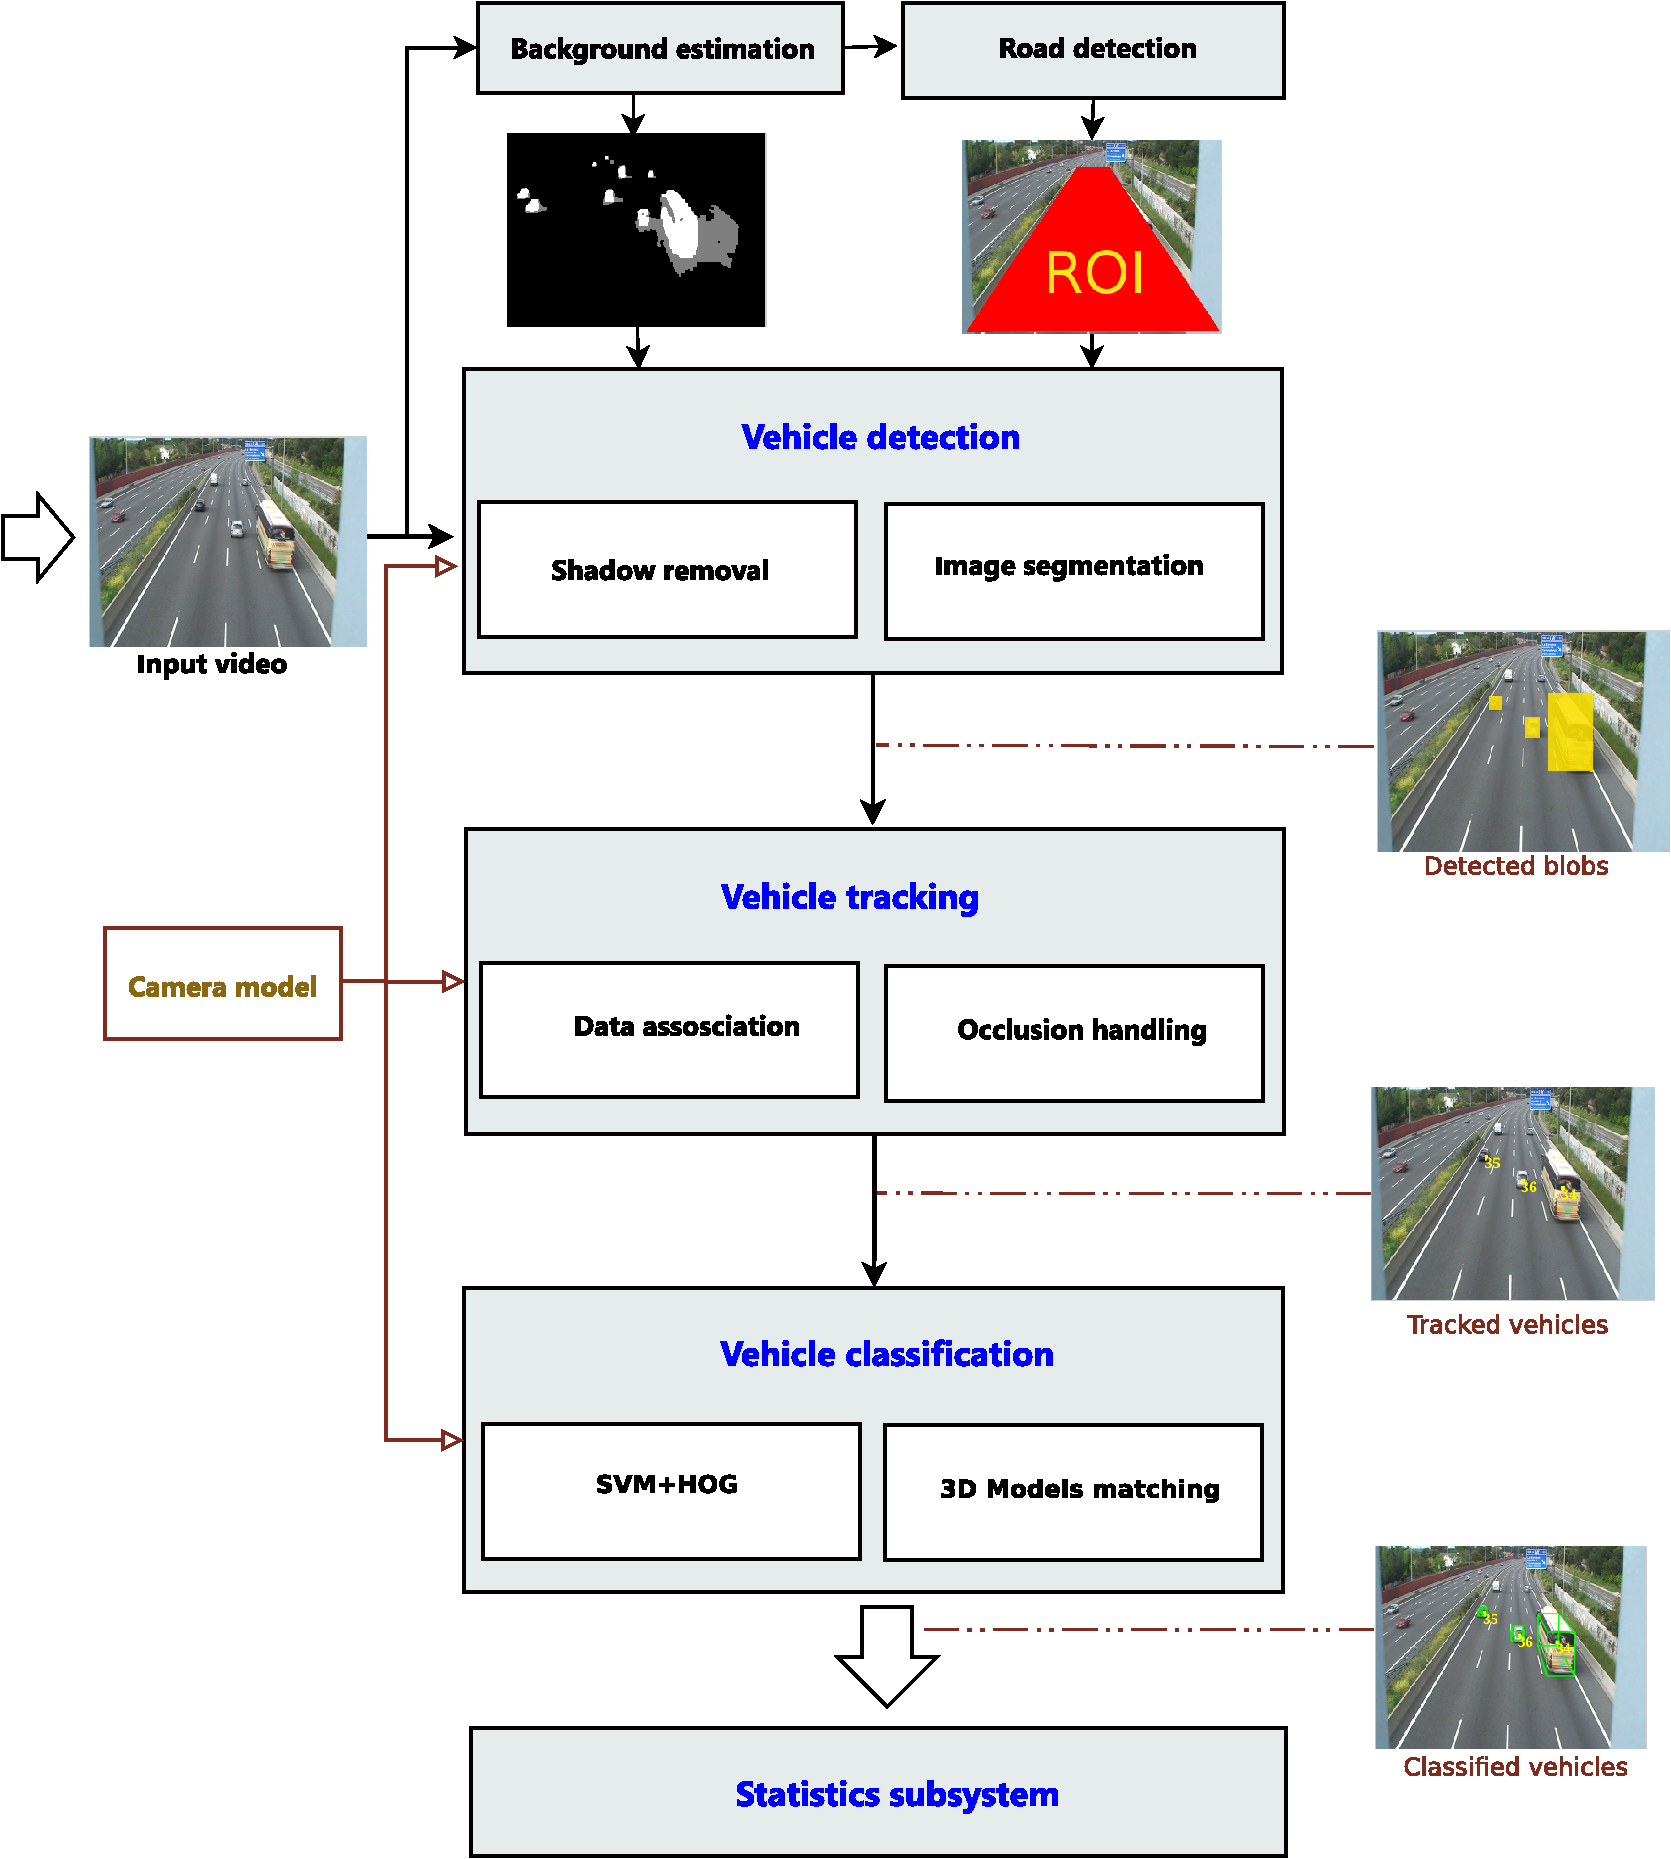 Hybrid Three Dimensional And Support Vector Machine Approach For 360 Degree Camera Block Diagram Pictures Of Trafficmonitor System